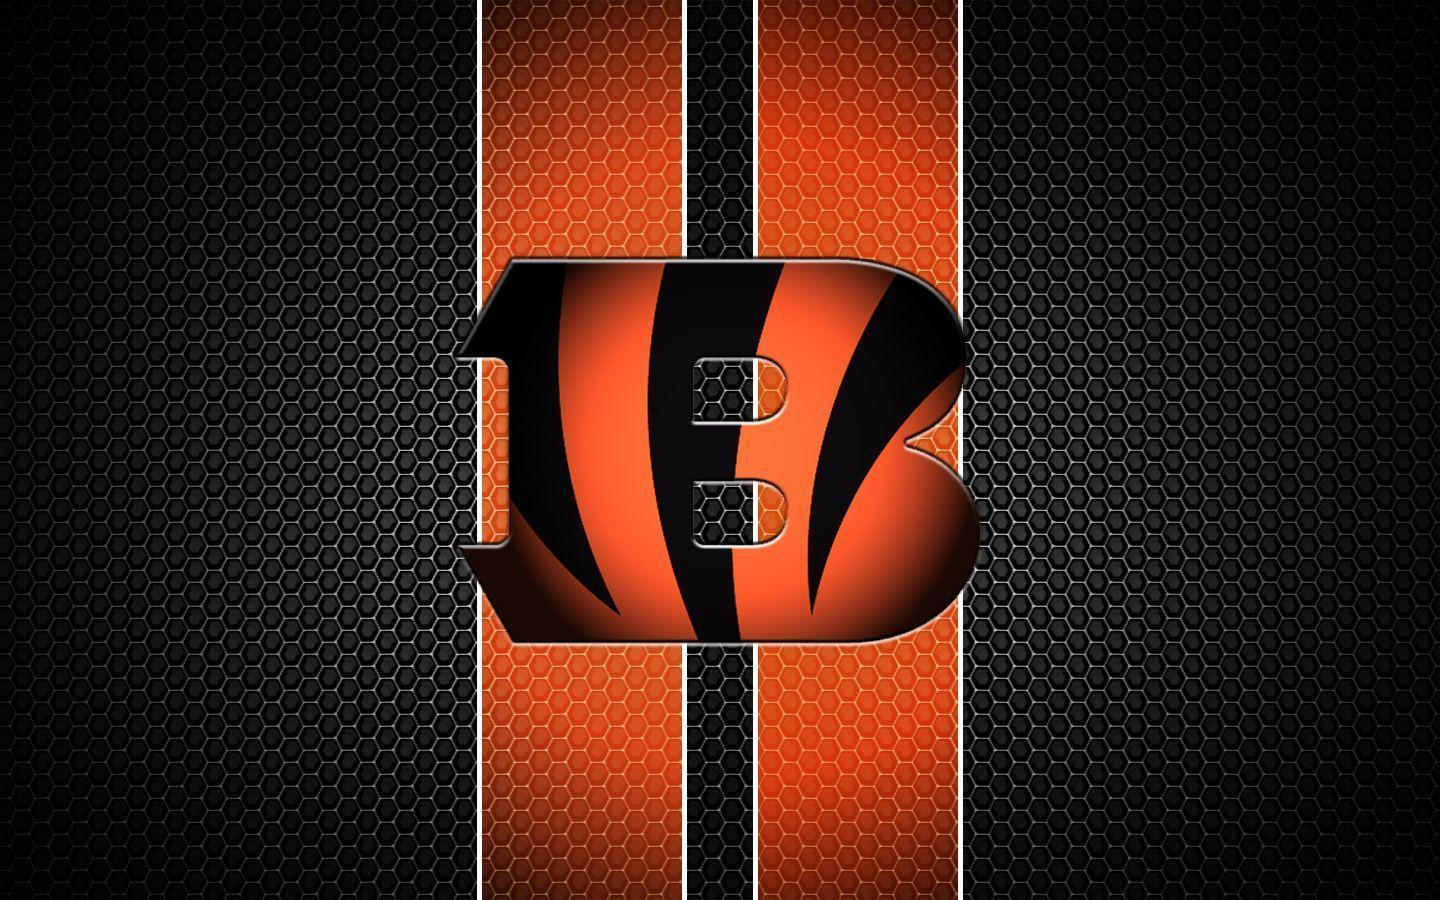 Cincinnati Bengals Wallpapers | HD Wallpapers Base